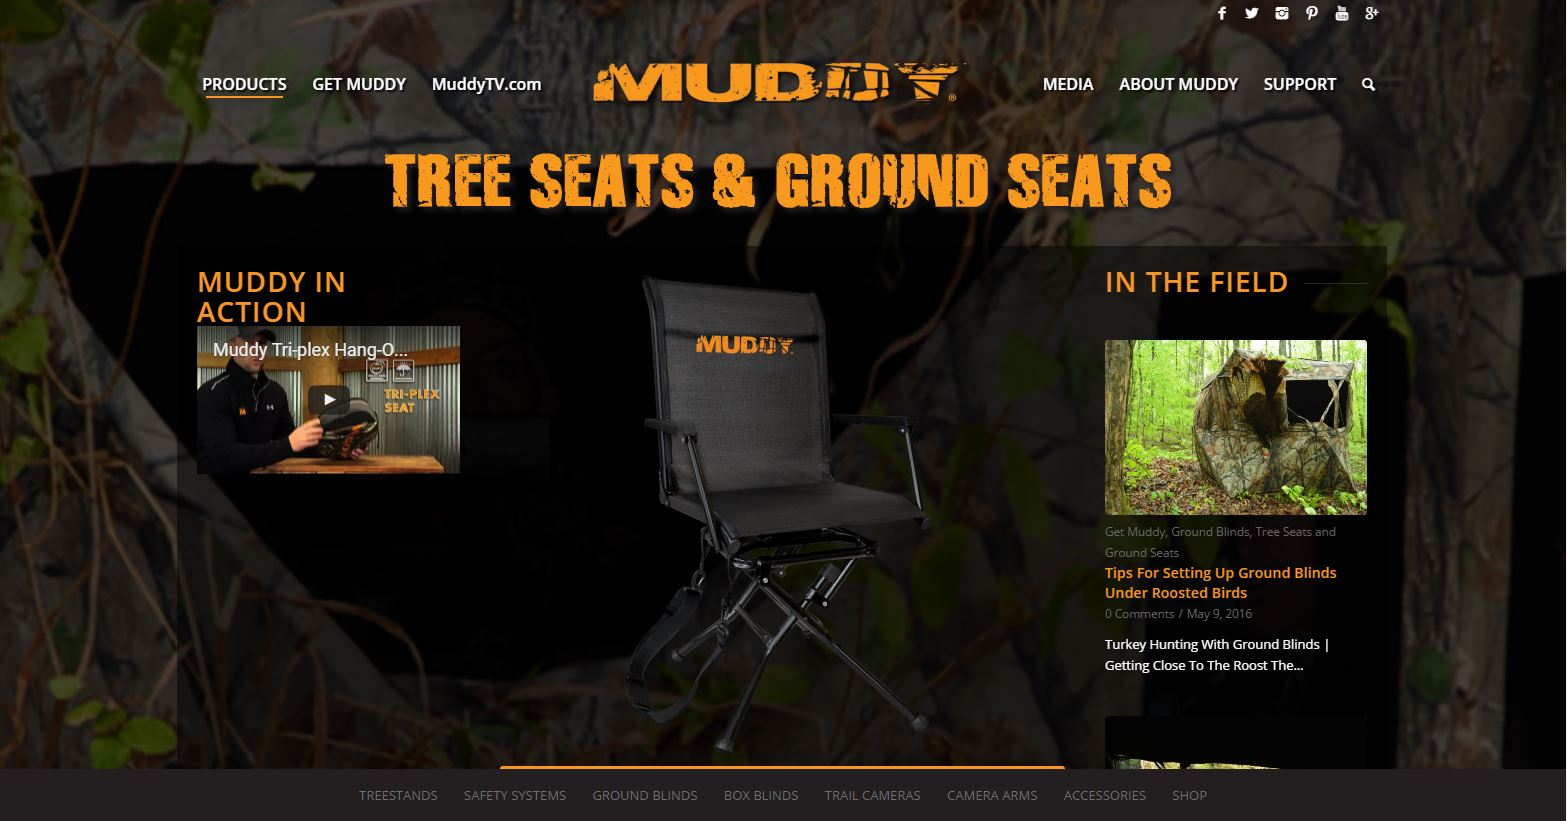 Muddy Outdoors  Tree Seats and Ground Seats  Muddy Outdoors